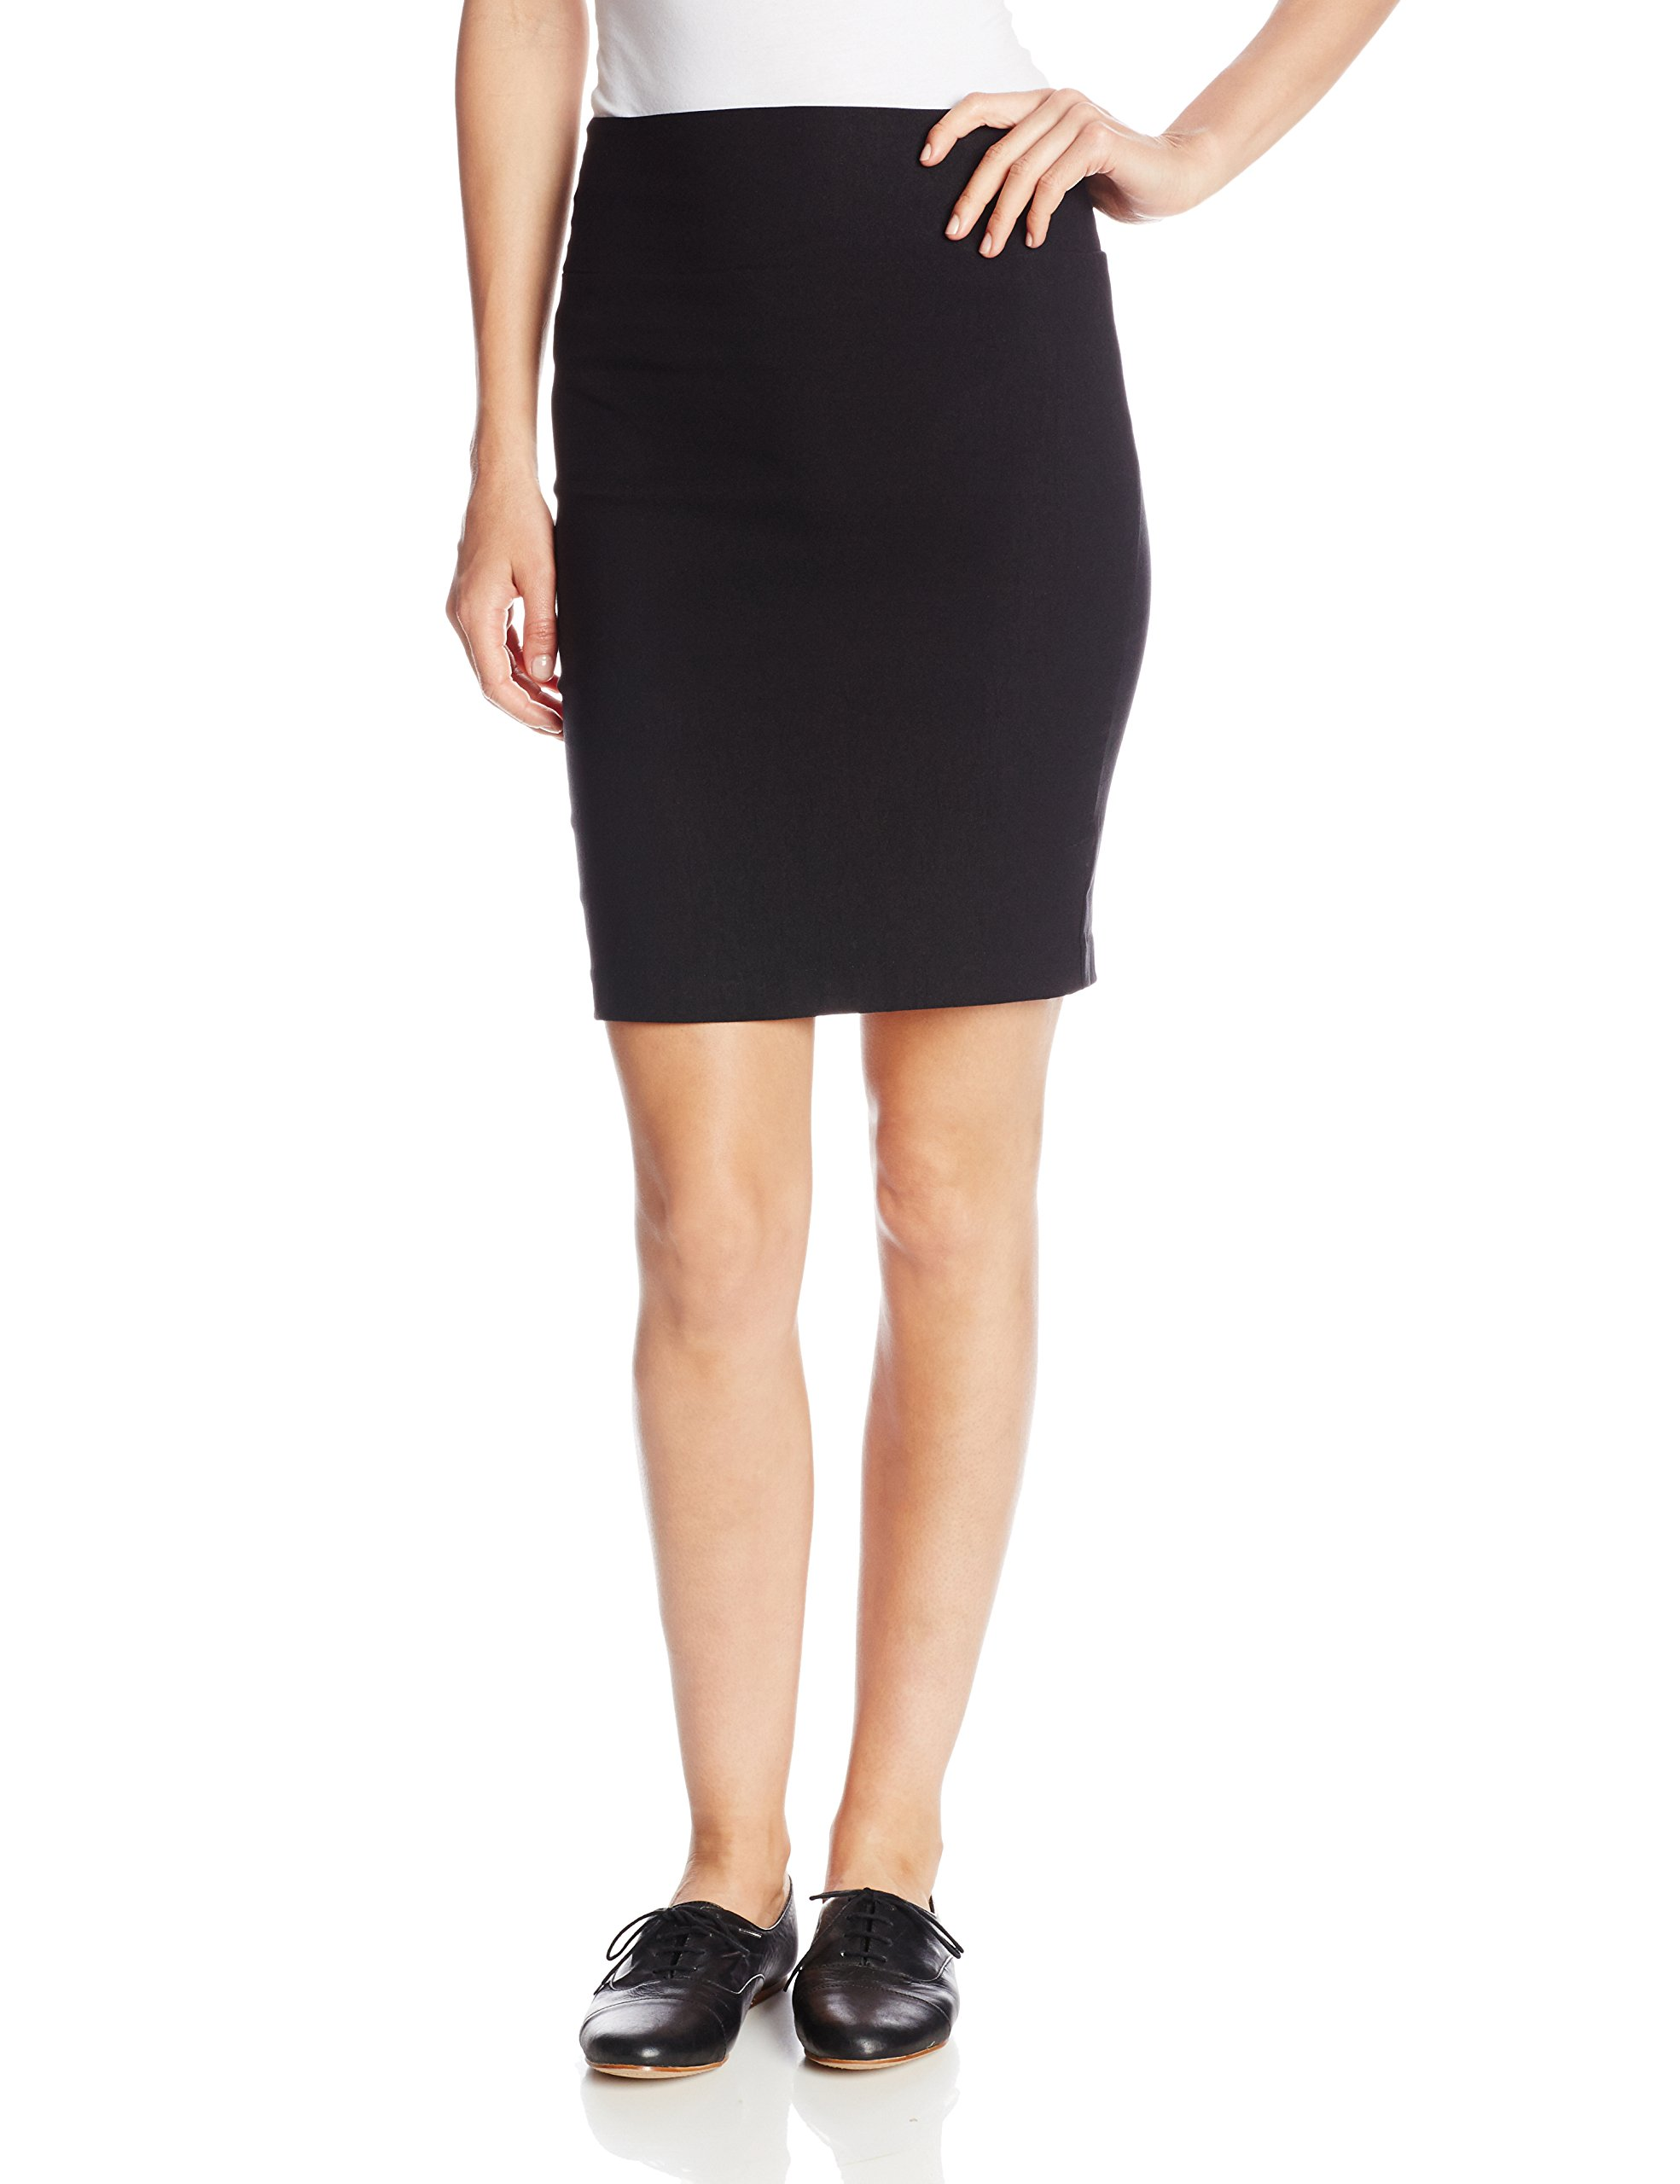 A. Byer Juniors Pull-On Slim Fitting Pencil Skirt, Black, Small by A. Byer (Image #1)